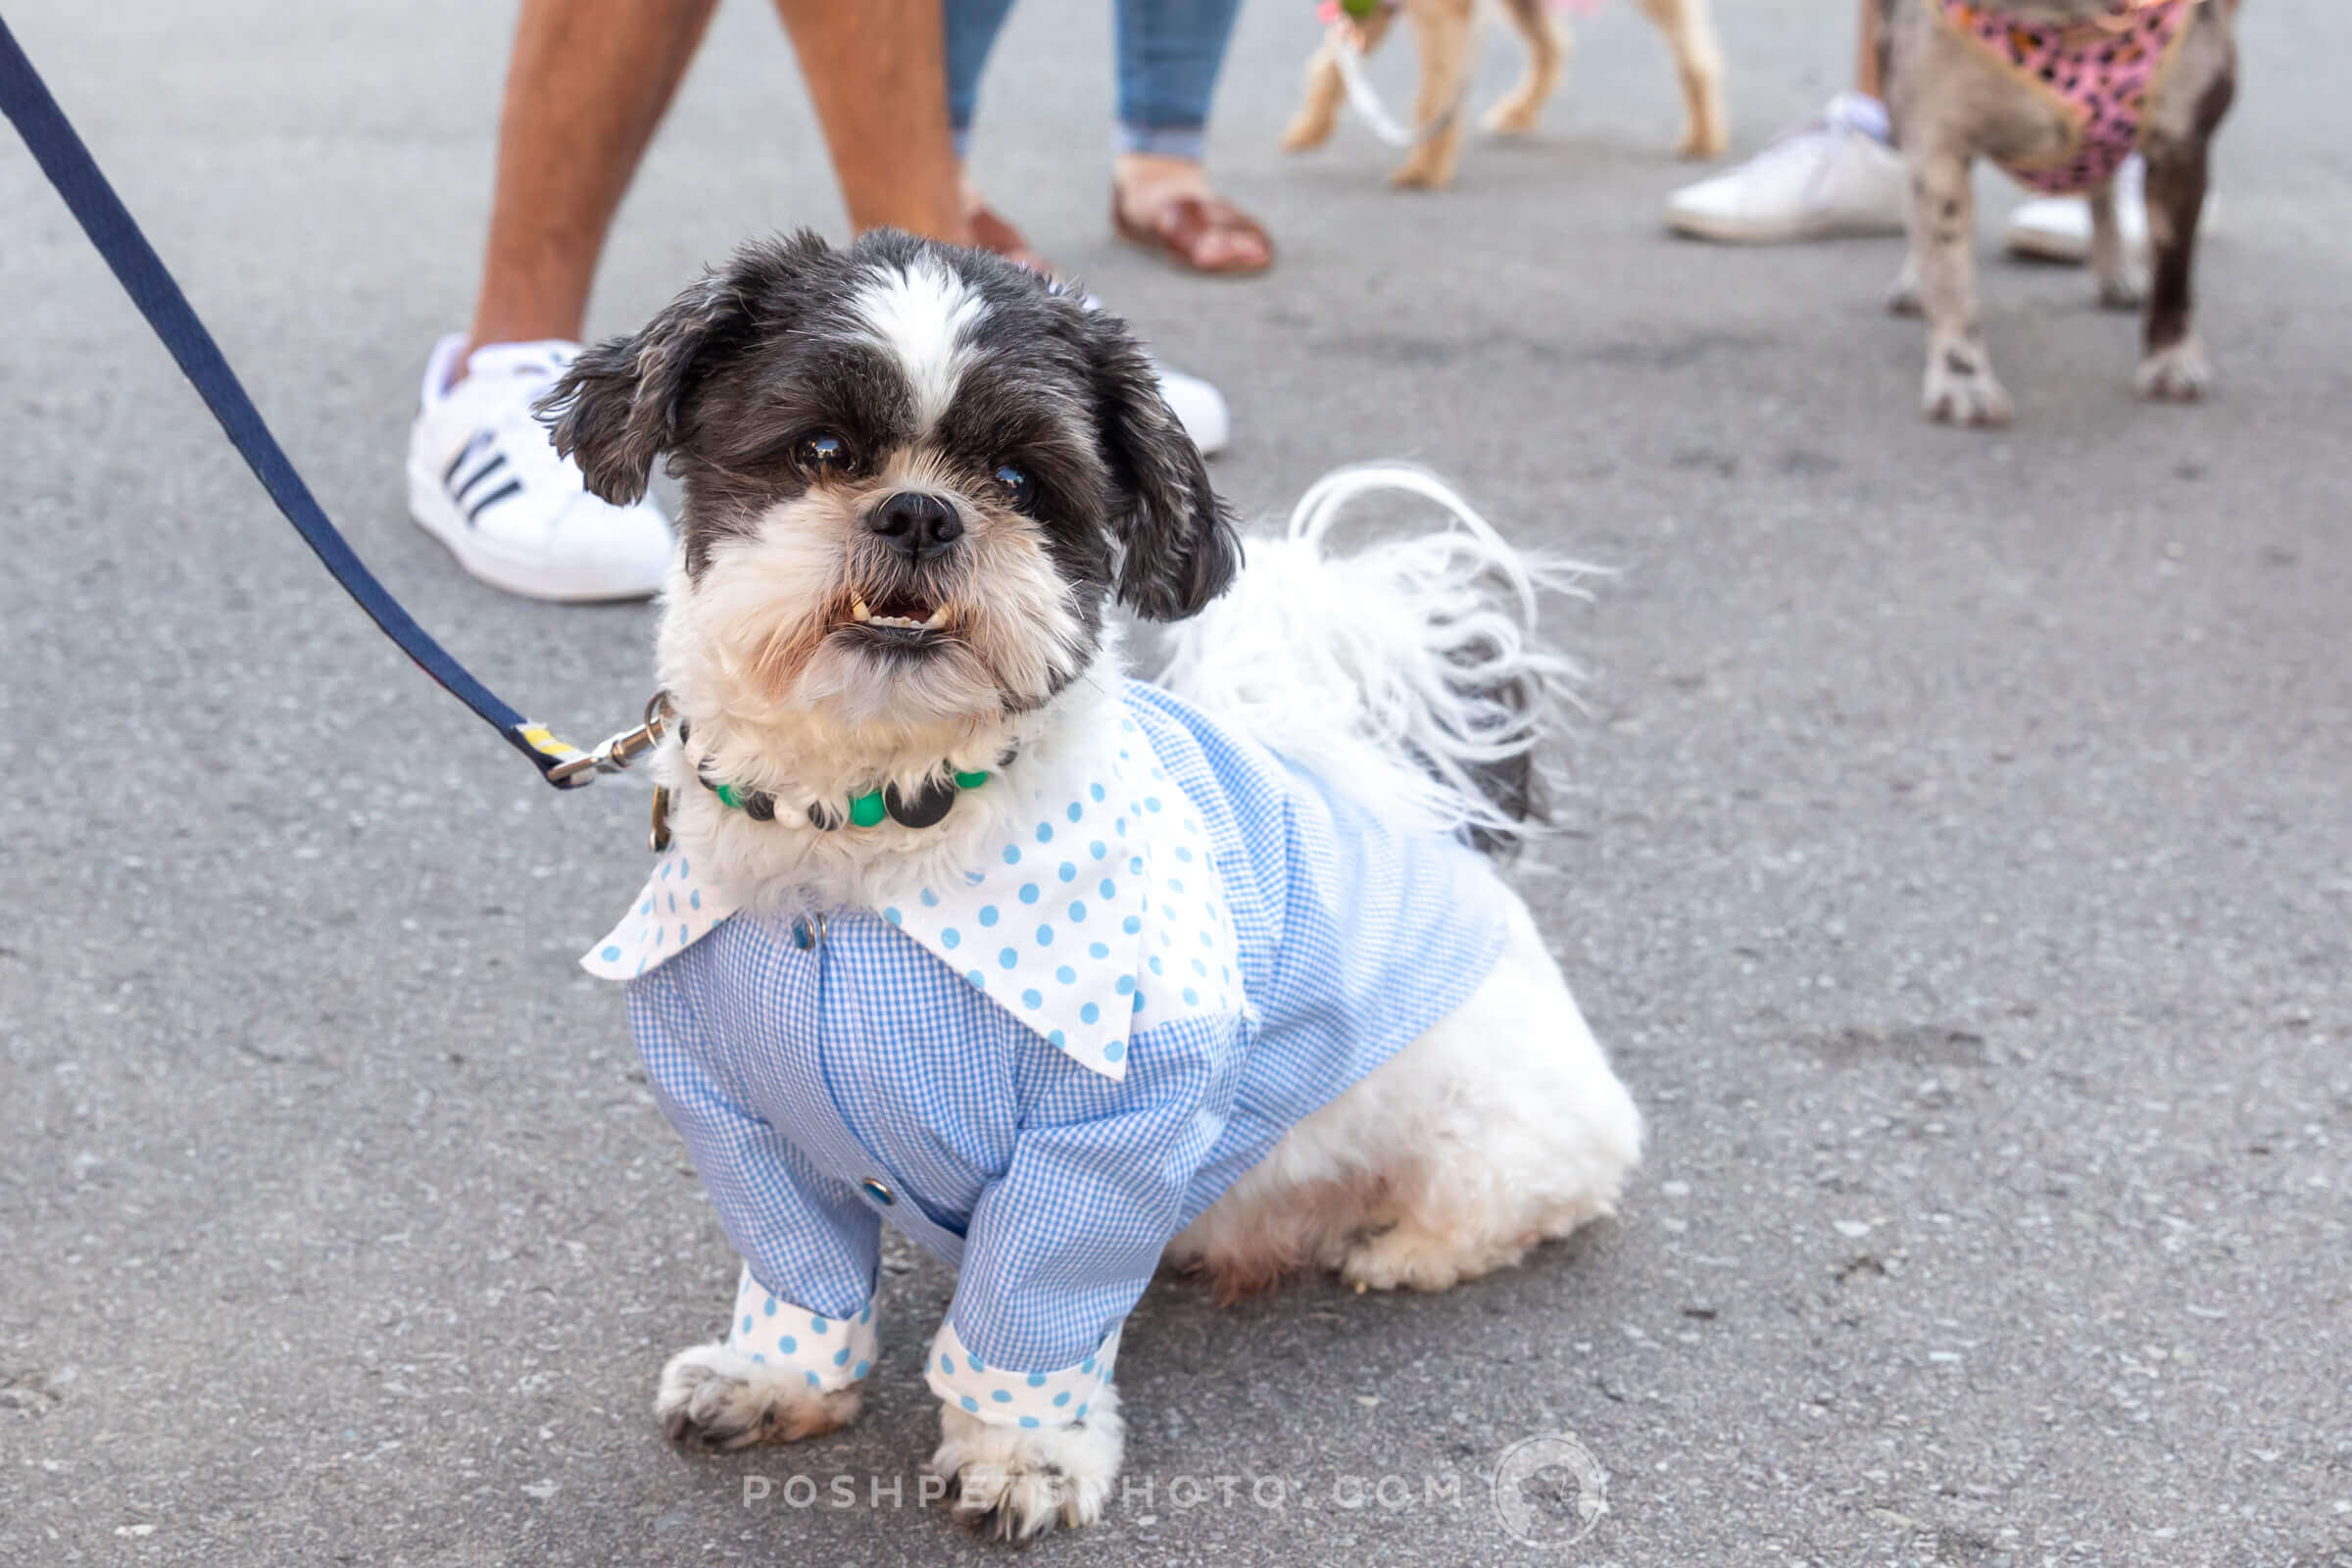 Shih Tzu dog at wedding